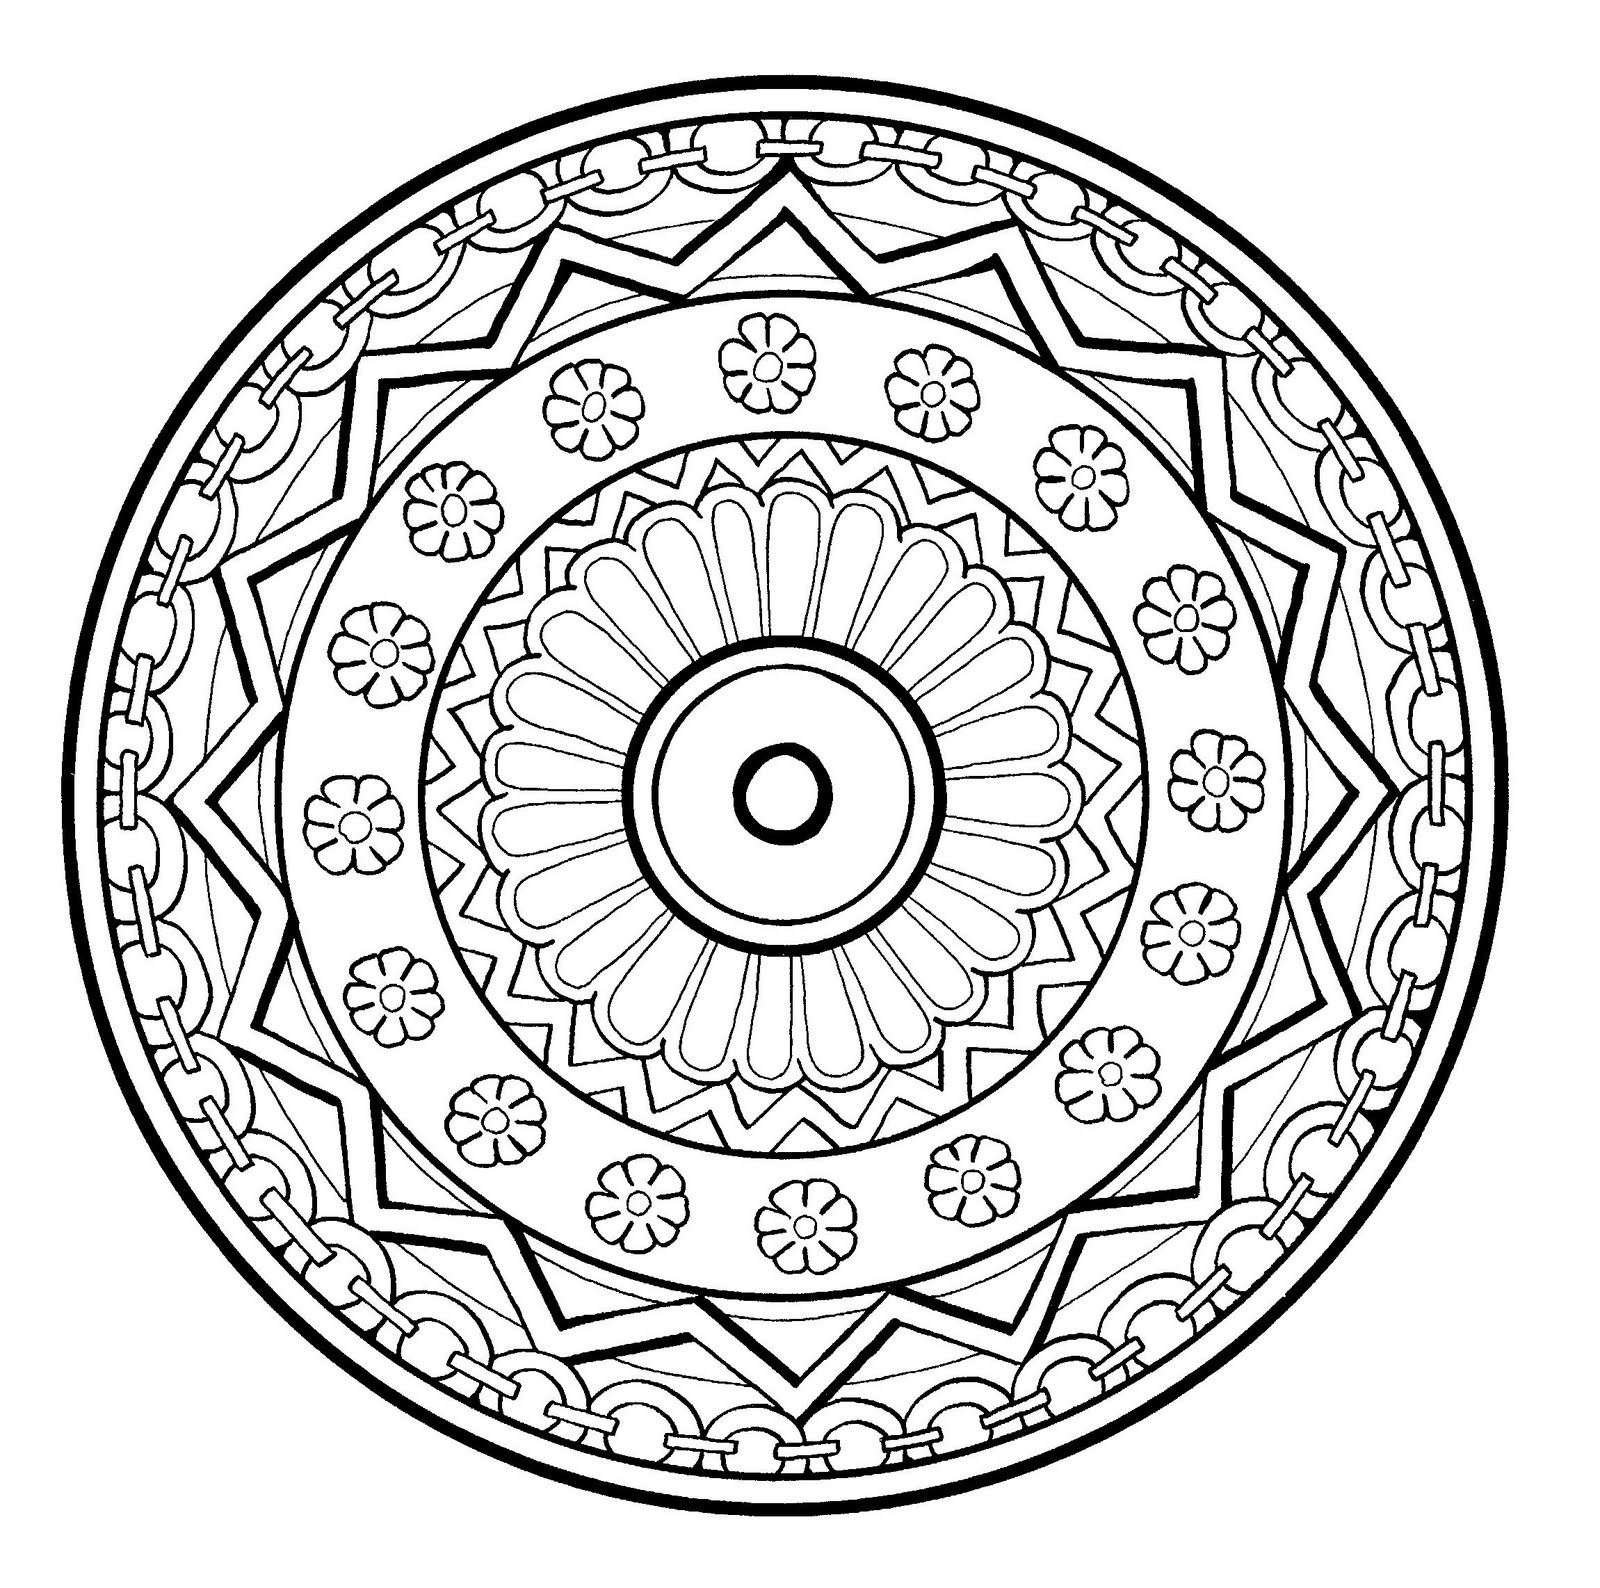 mandala drawing of normal difficulty level with flowers and abstract patterns very well drawn - Print And Color